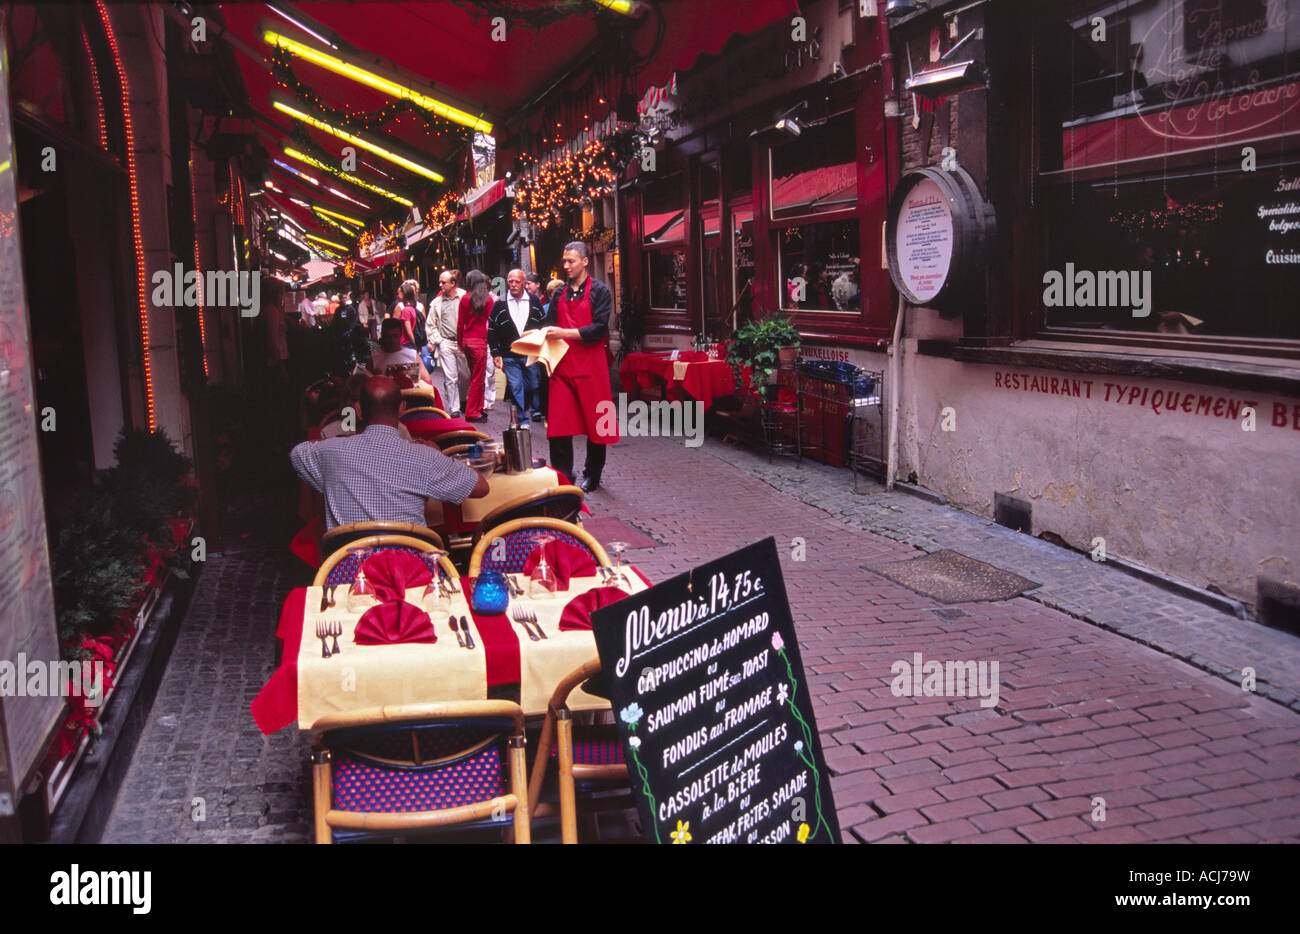 Street dining in a restaurant near the Grand Place, Brussels, Belgium. - Stock Image